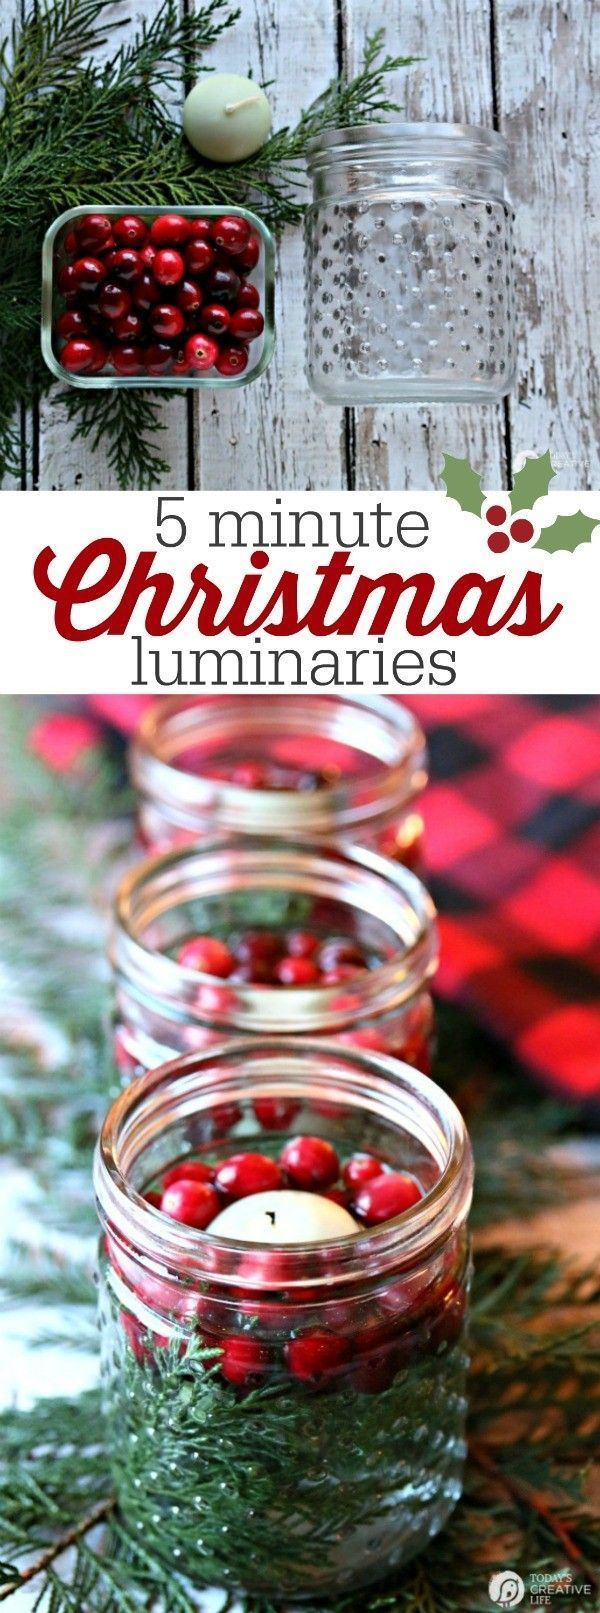 5 minute DIY Christmas luminaries | Quick and easy Christmas decorating. Whip up these floating candles with cranberries and cedar for a stunning table centerpiece.